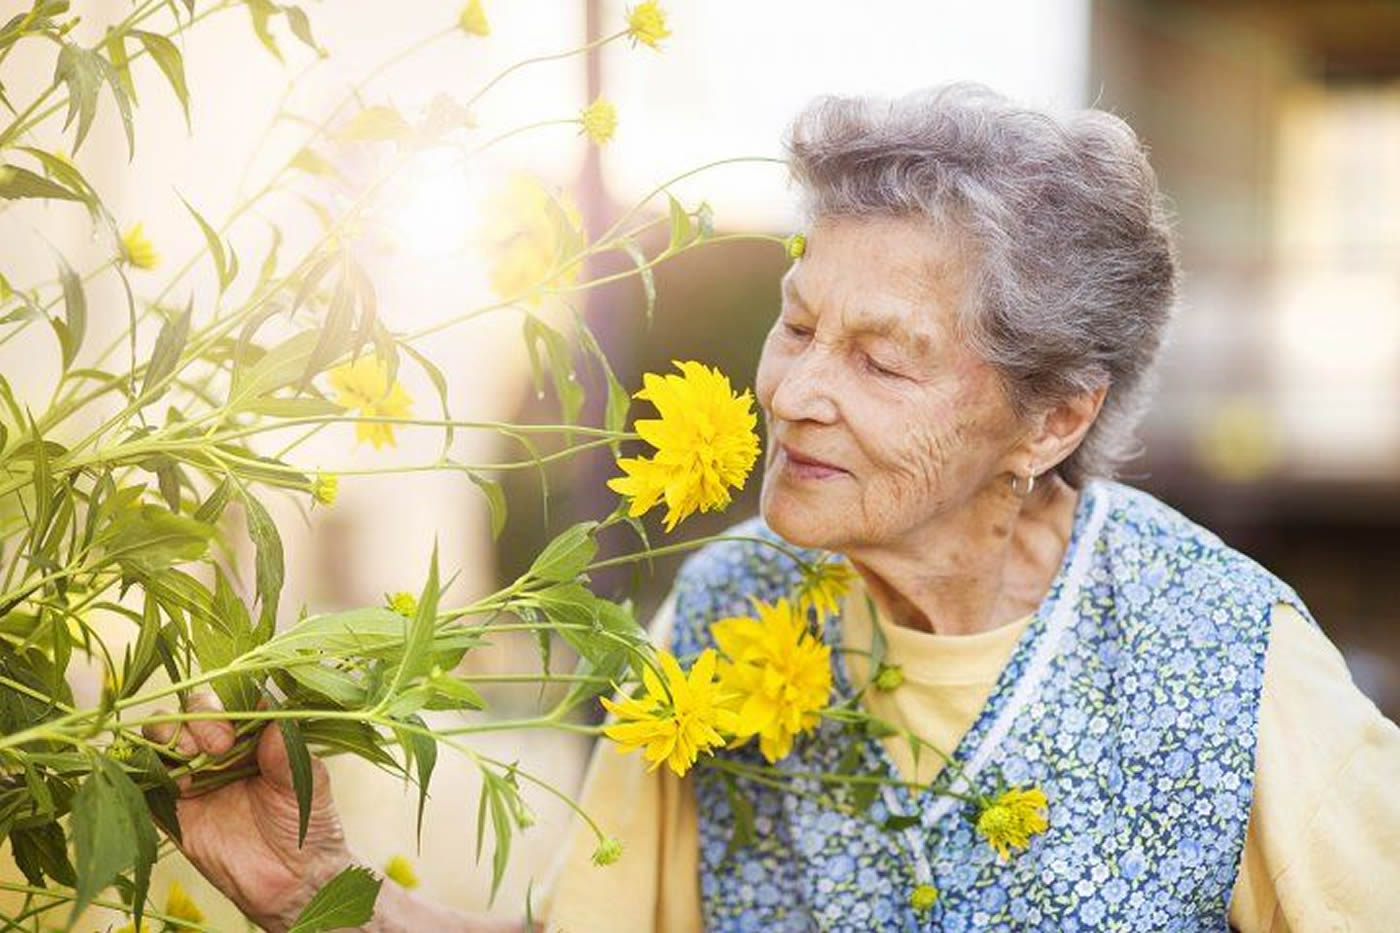 This shows an old lady smelling a rose